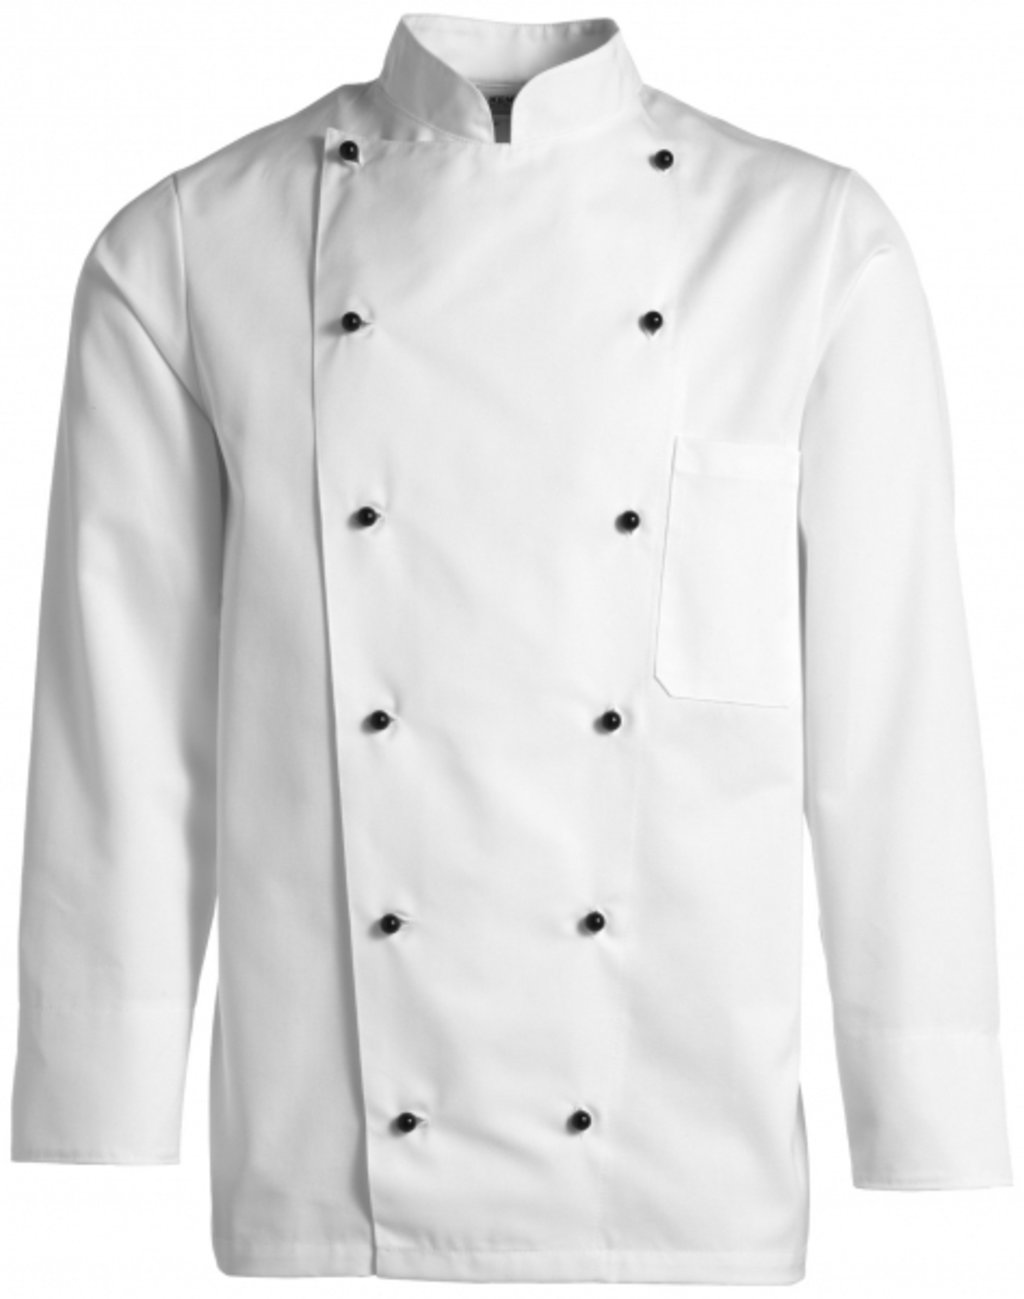 Kentaur chefs jacket without buttons, White